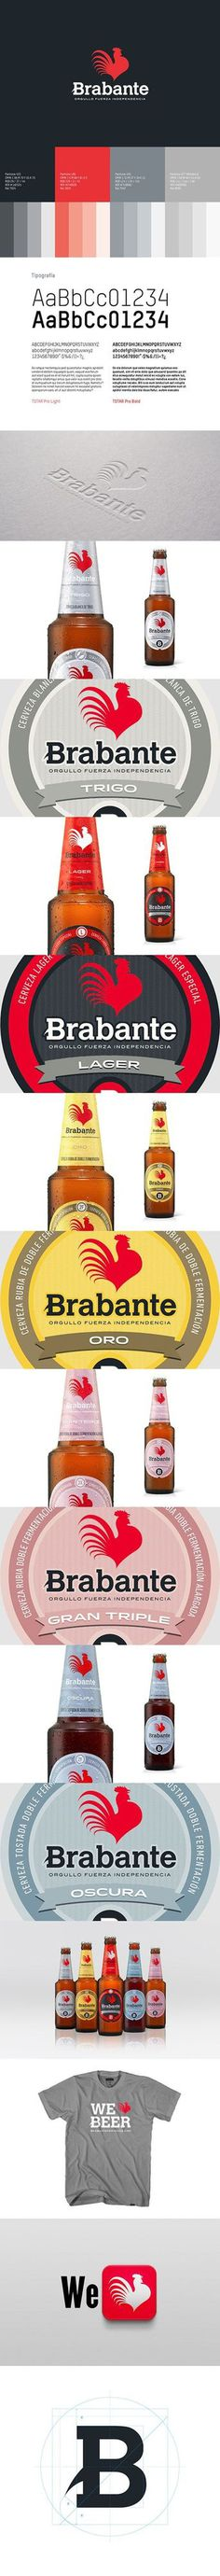 Brabante new visual identity and branding | Designer: TritonePD